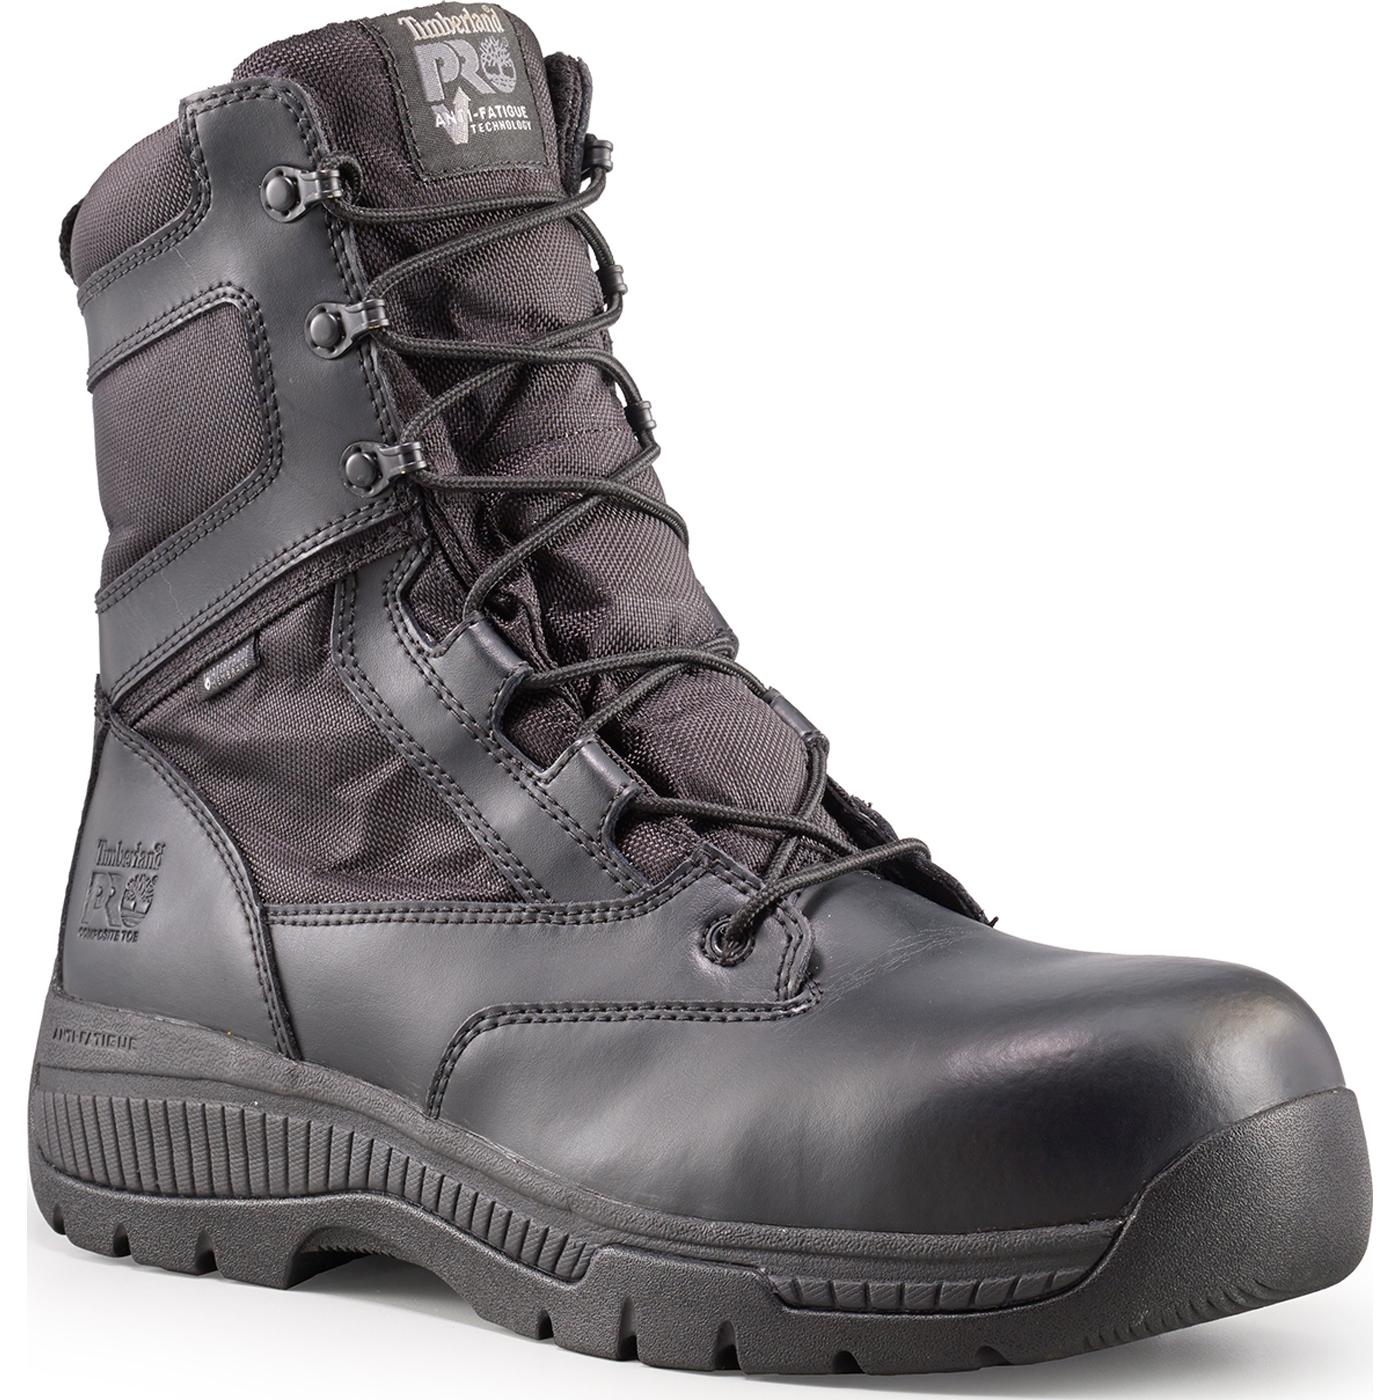 Timberland PRO Valor Unisex Composite Toe Waterproof Side Zip Duty Boot 45e24434ddbe